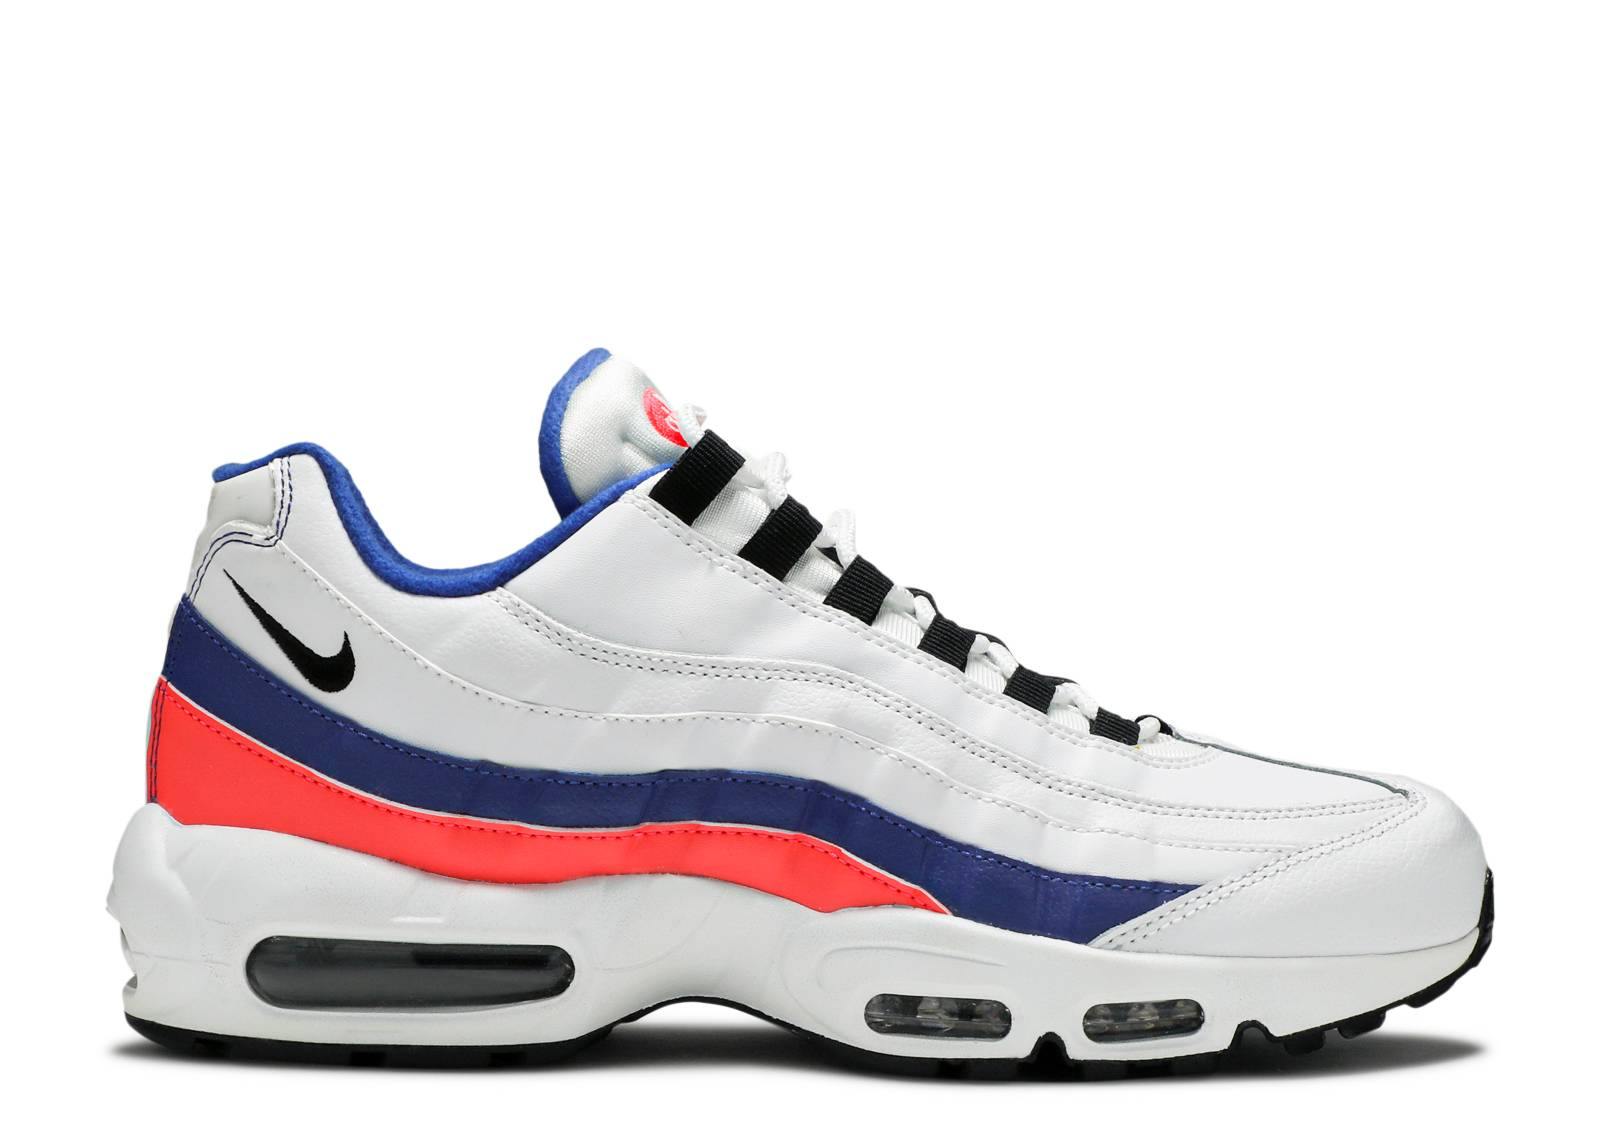 26c079940b Air Max 95 Essential - Nike - 749766 106 - white/black-solar red ...